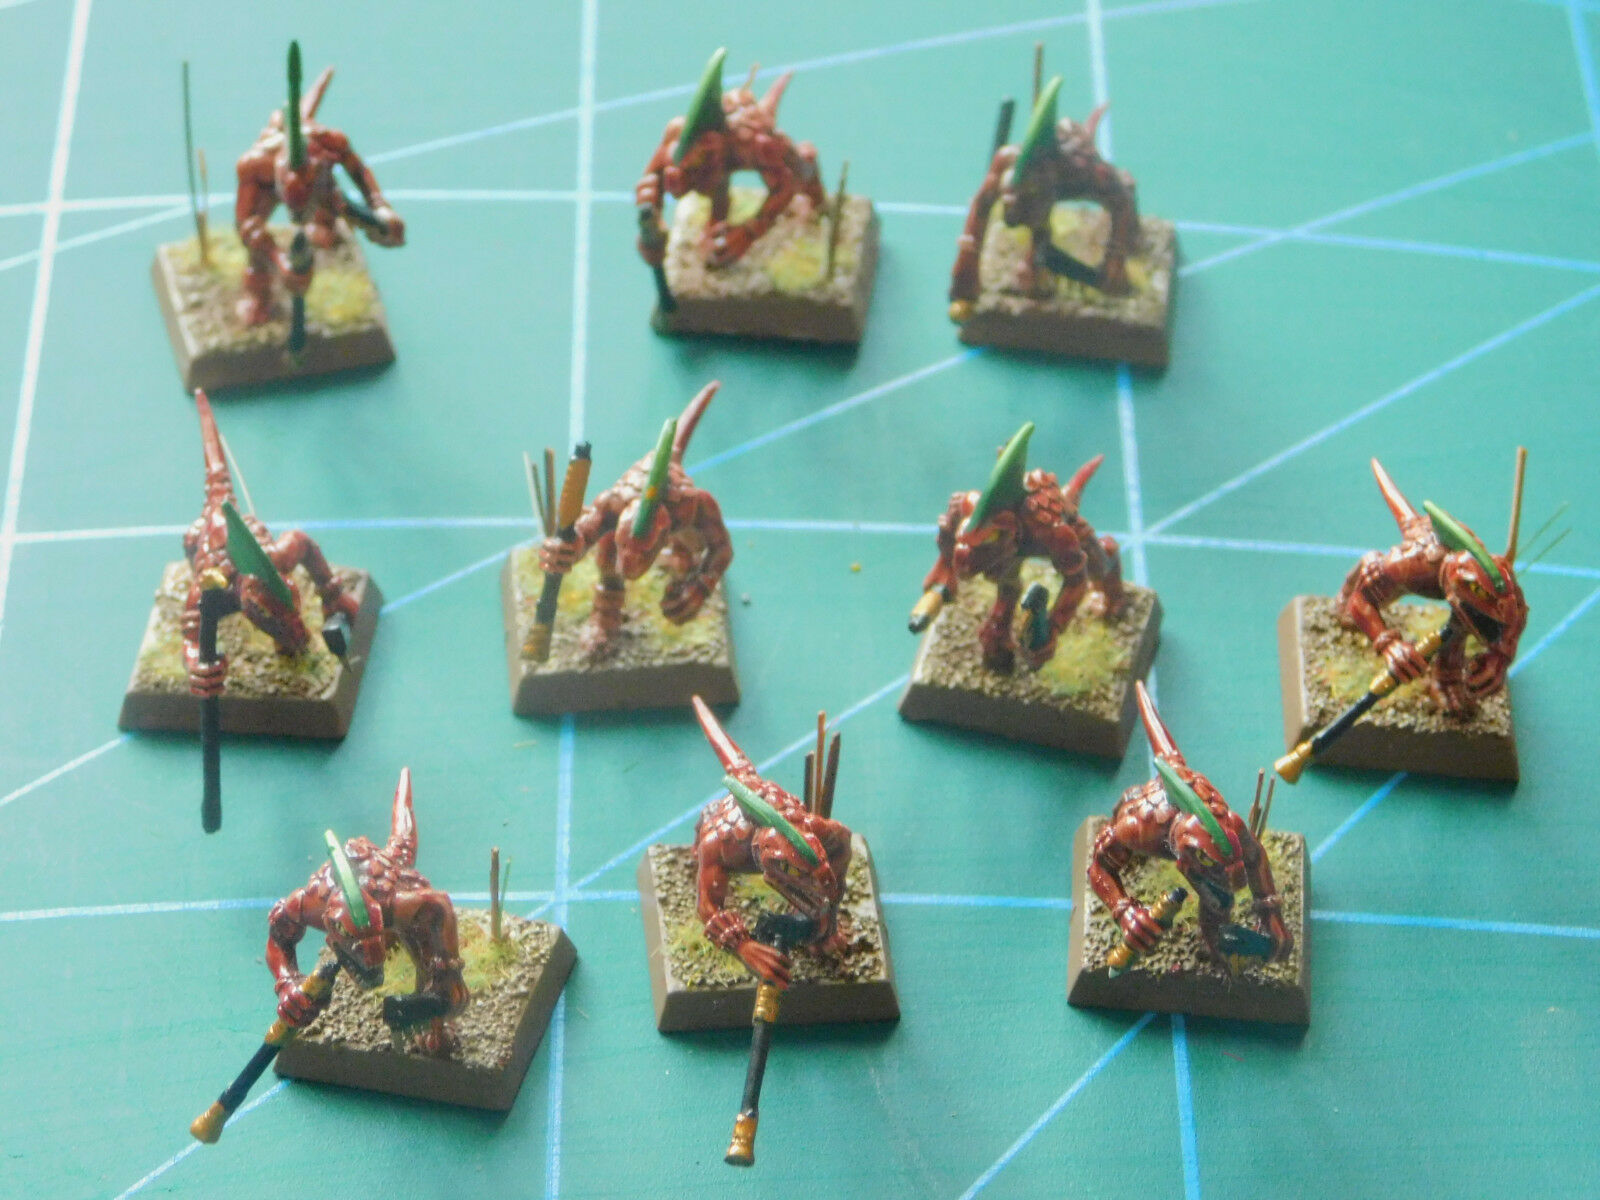 10 warhammer 40k dungeons dragons draconians creatures painted plastic figures